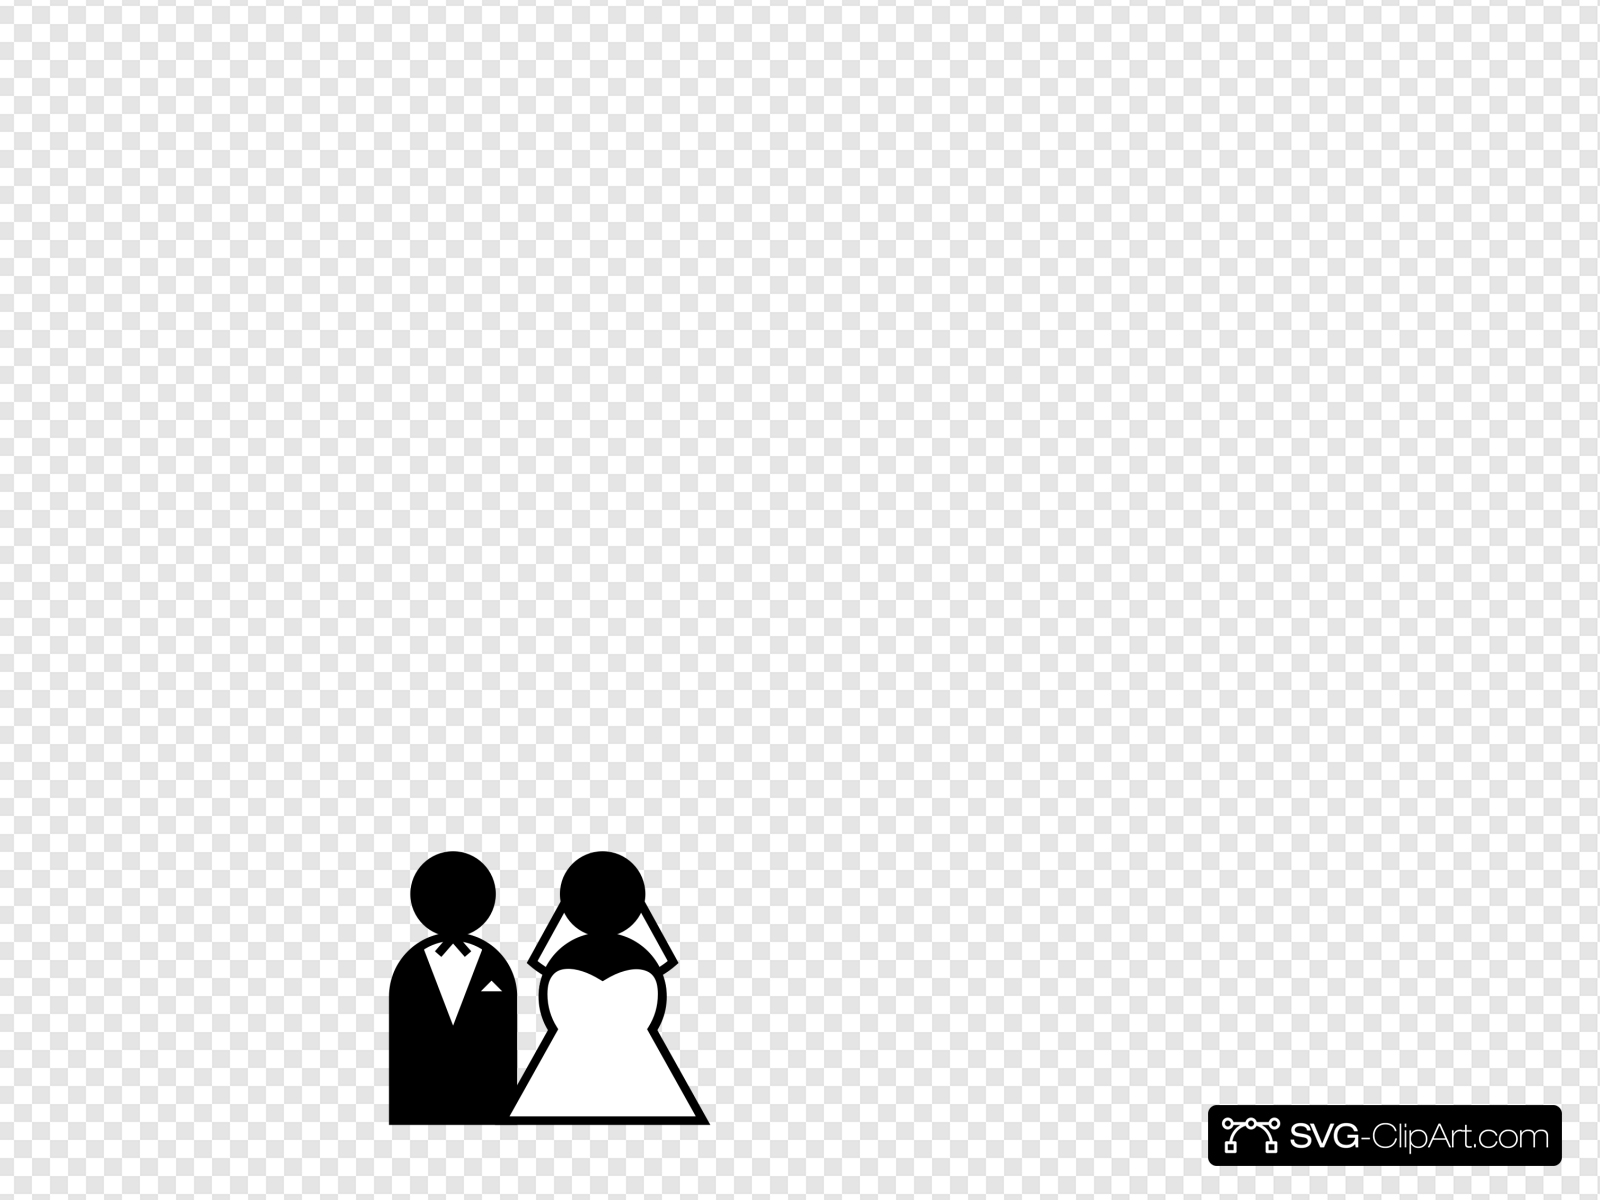 Wedding Sign Clip art, Icon and SVG.